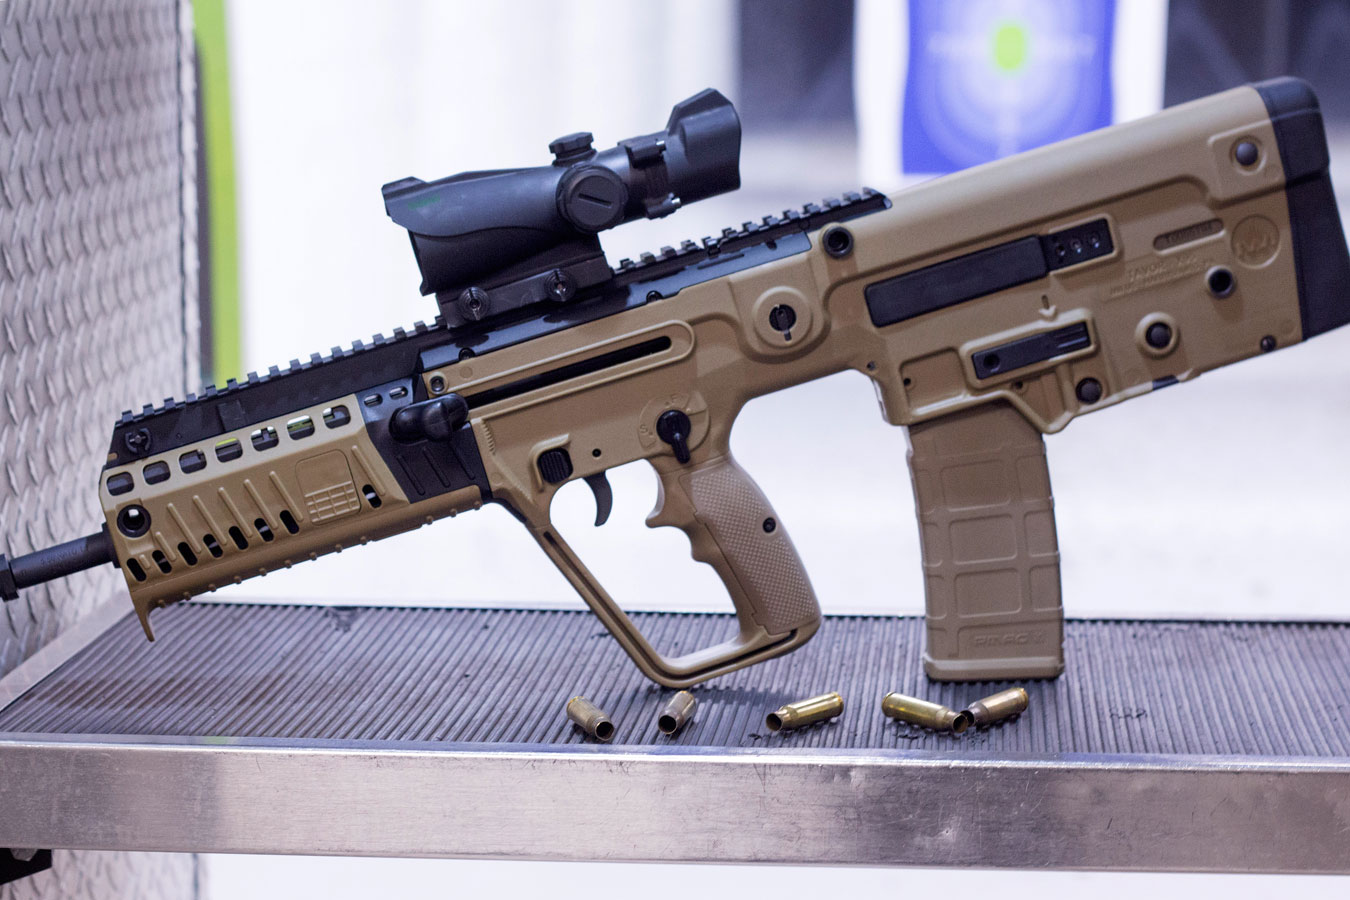 Review: IWI Tavor X95 Bullpup - The K-Var Armory